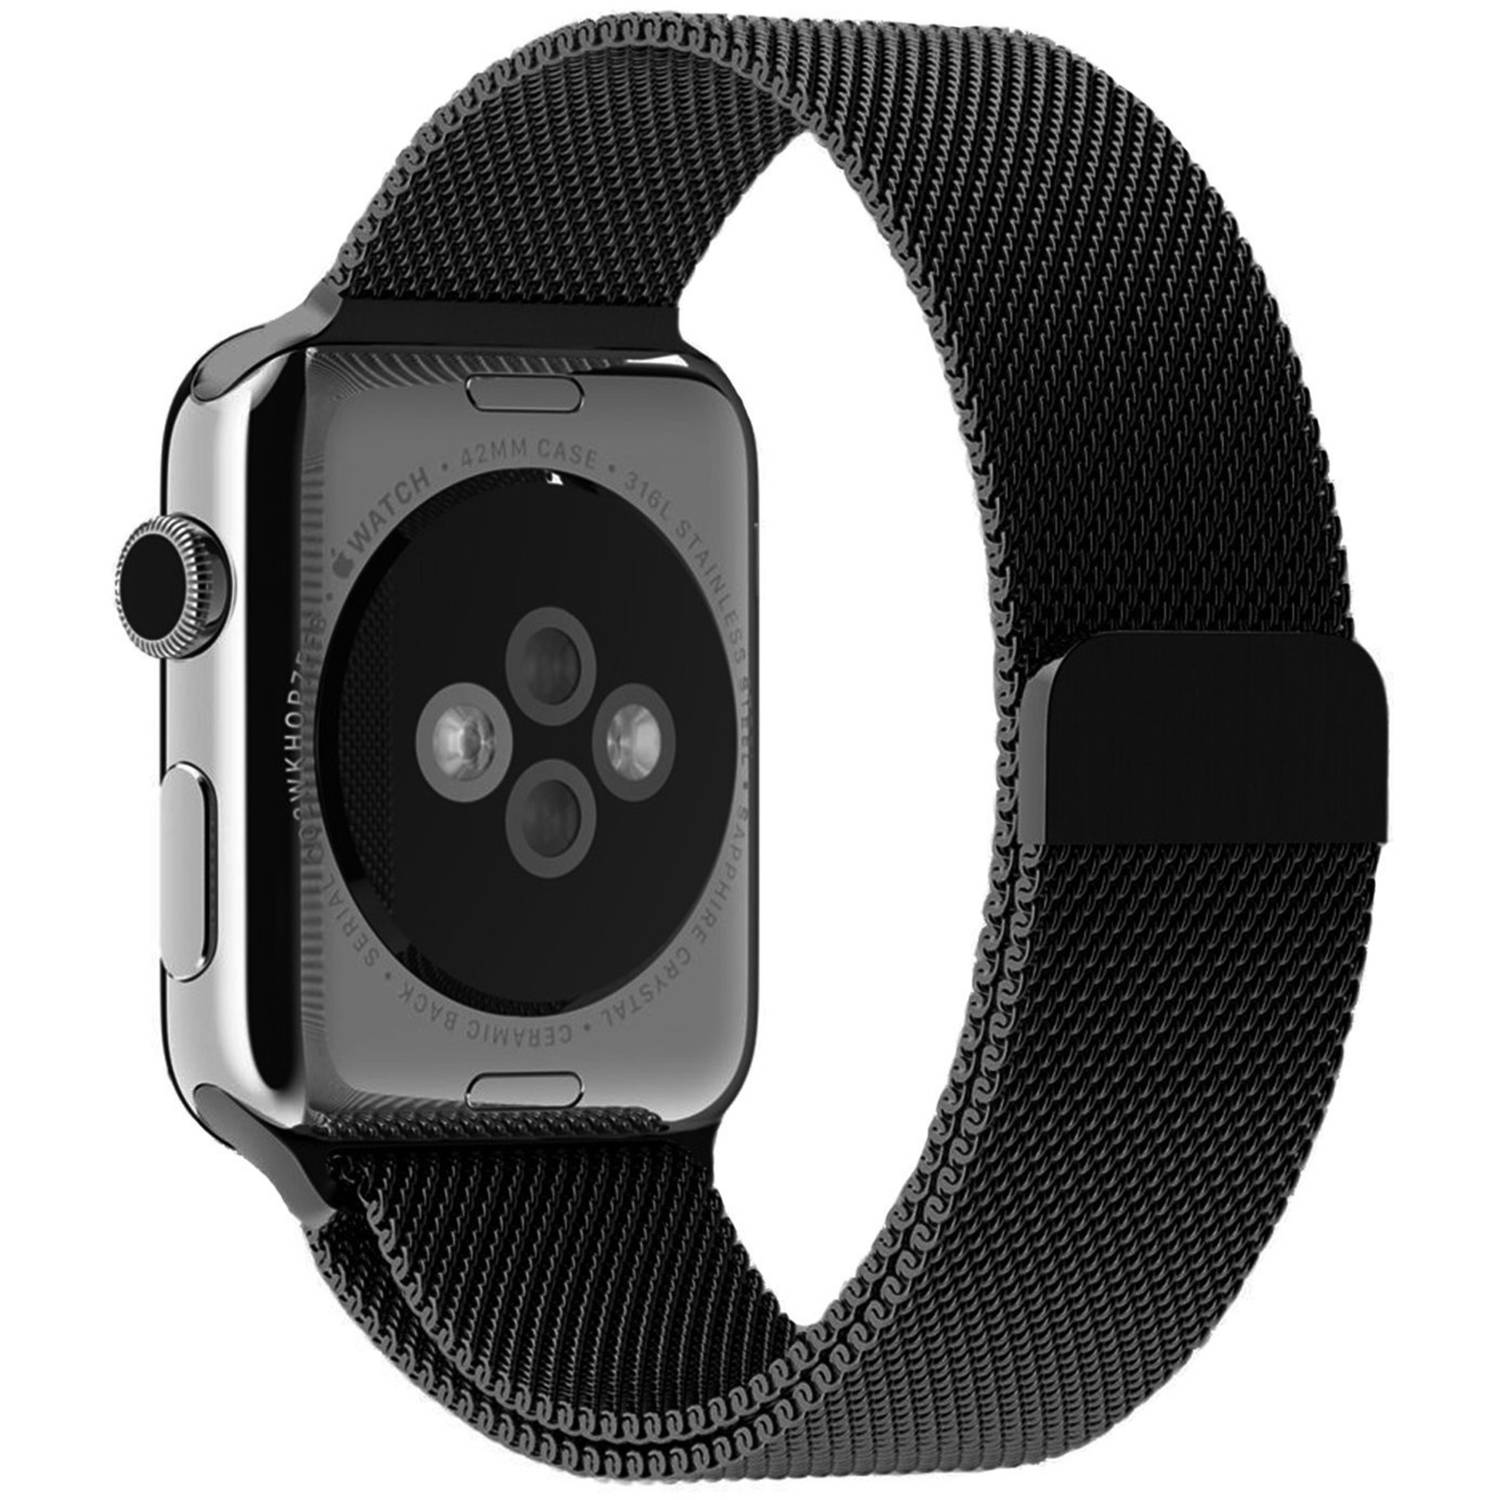 JETech 42mm Milanese Loop Stainless Steel Bracelet Strap with Unique Magnet Lock Replacement Band for Apple Watch Series 1 and 2